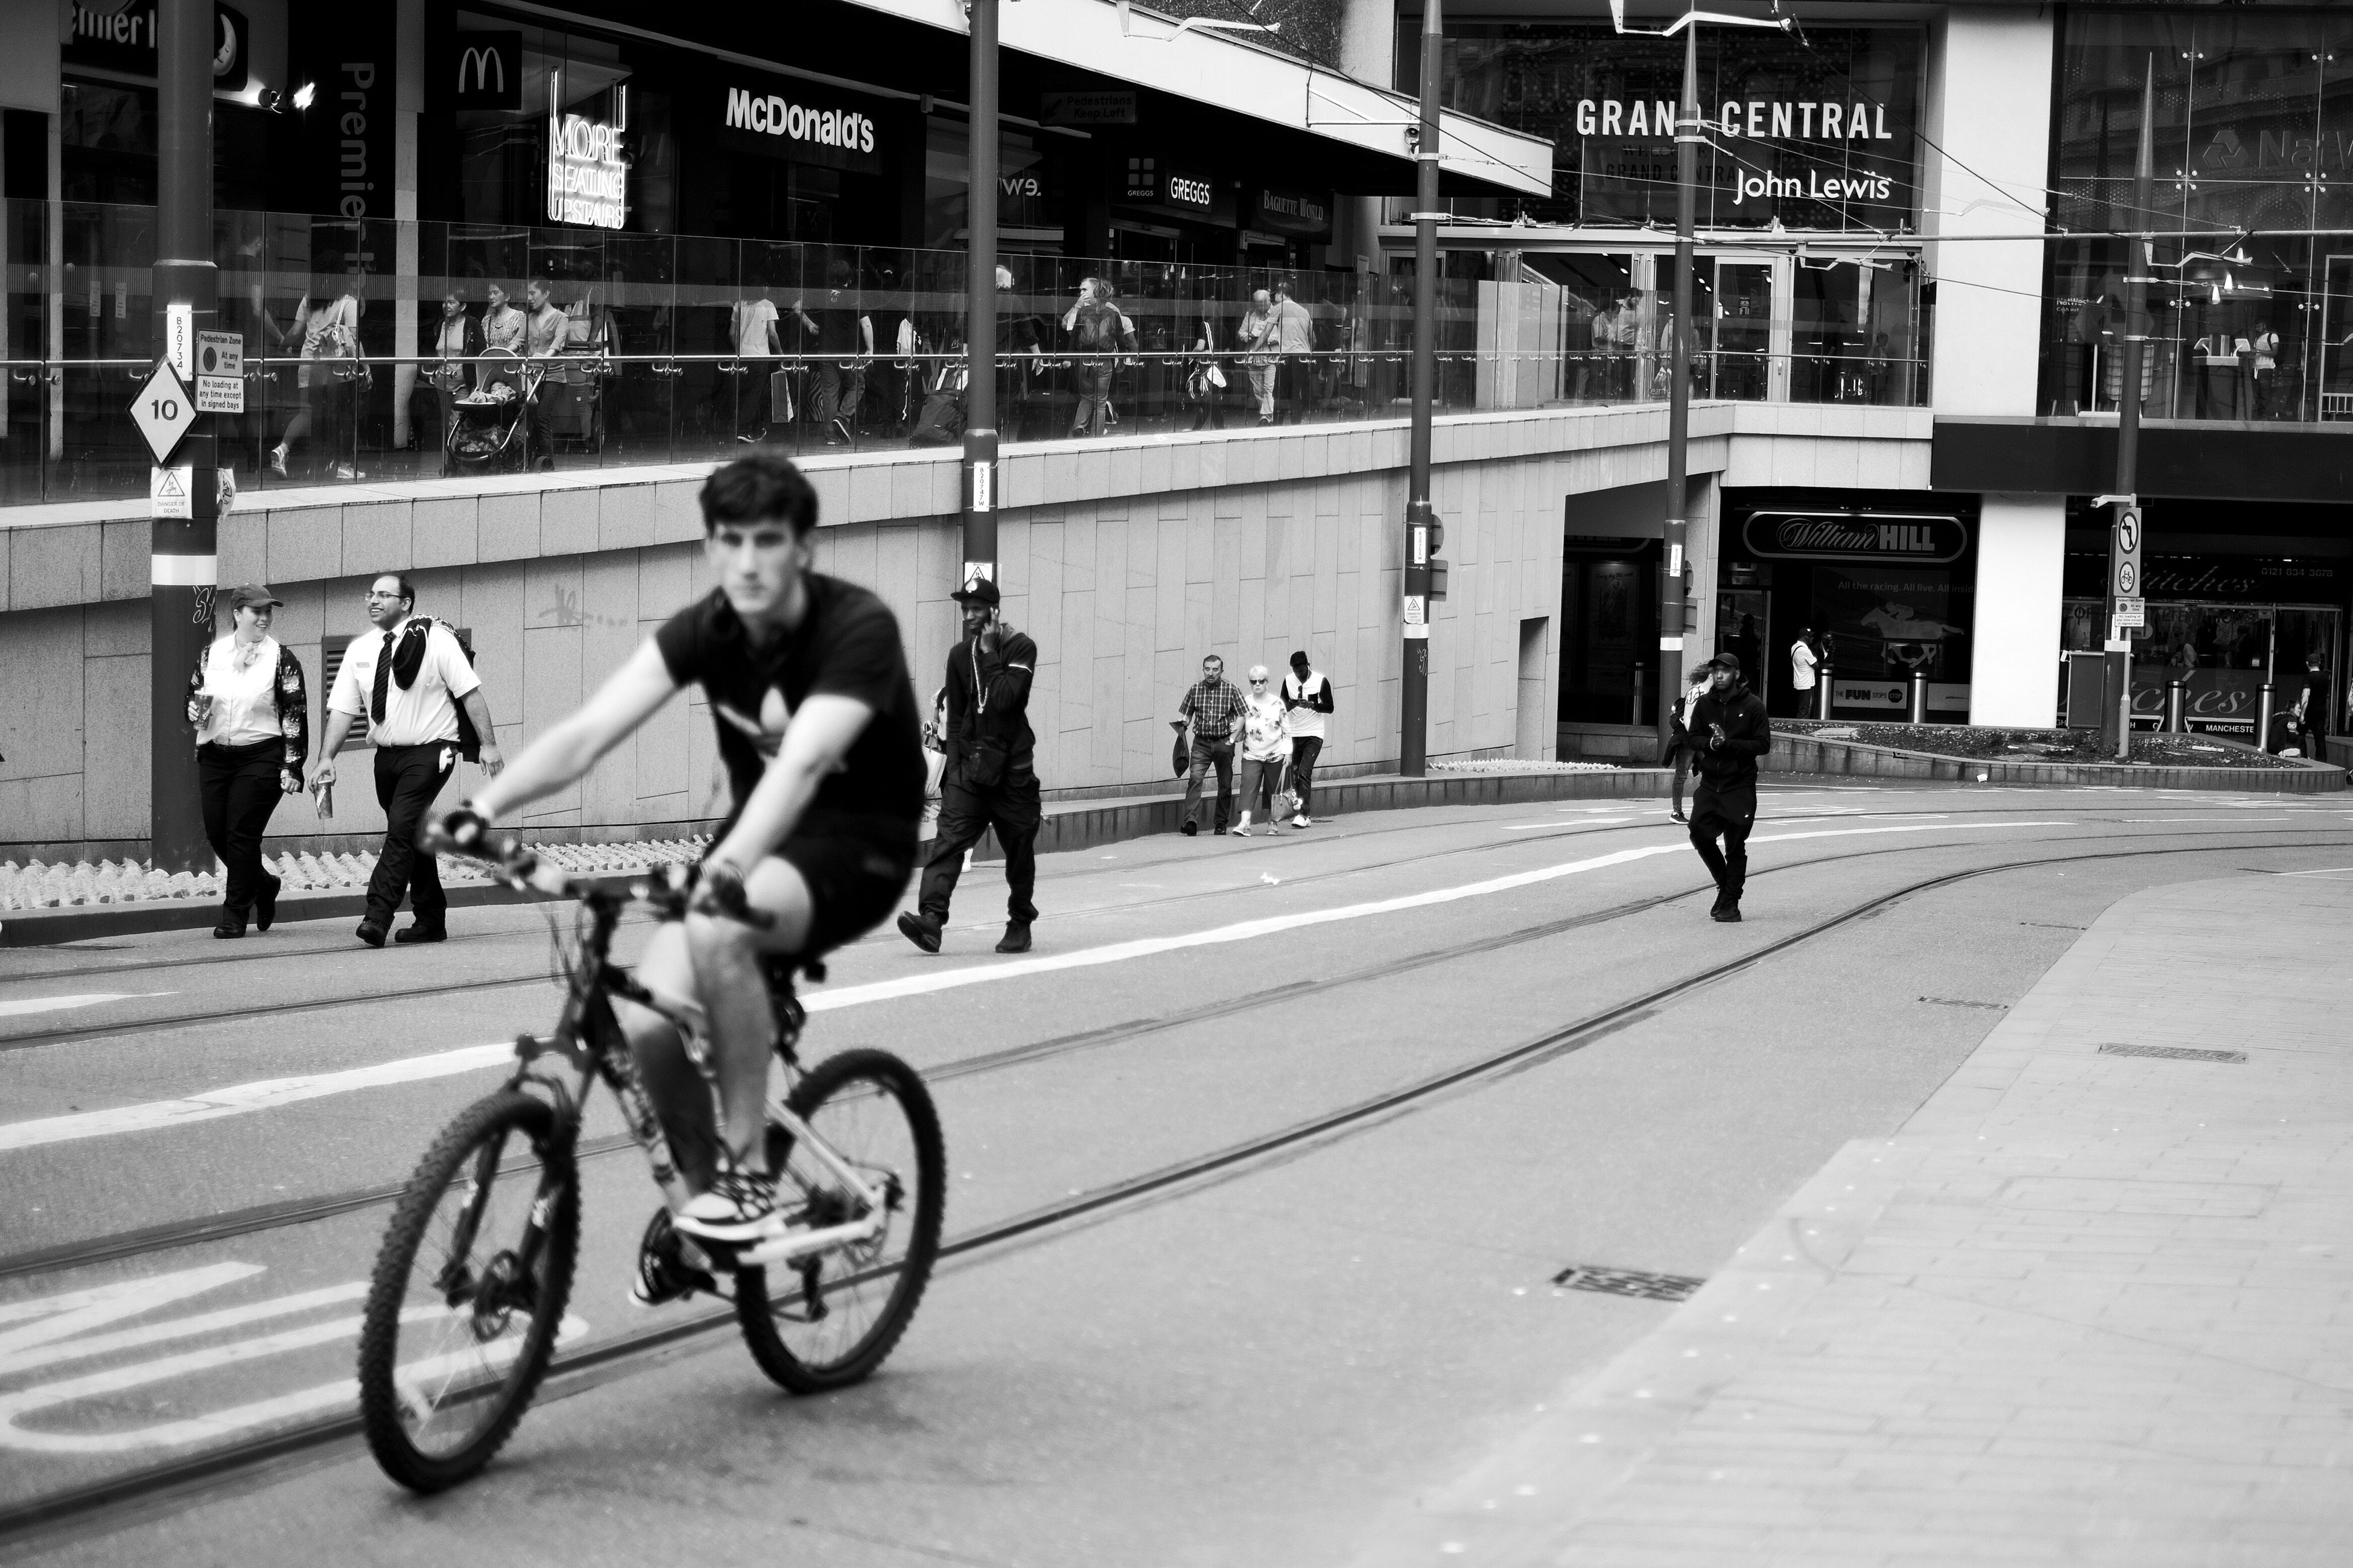 real people, bicycle, street, building exterior, men, architecture, built structure, transportation, riding, road, full length, city, cycling, women, outdoors, lifestyles, land vehicle, day, large group of people, adult, people